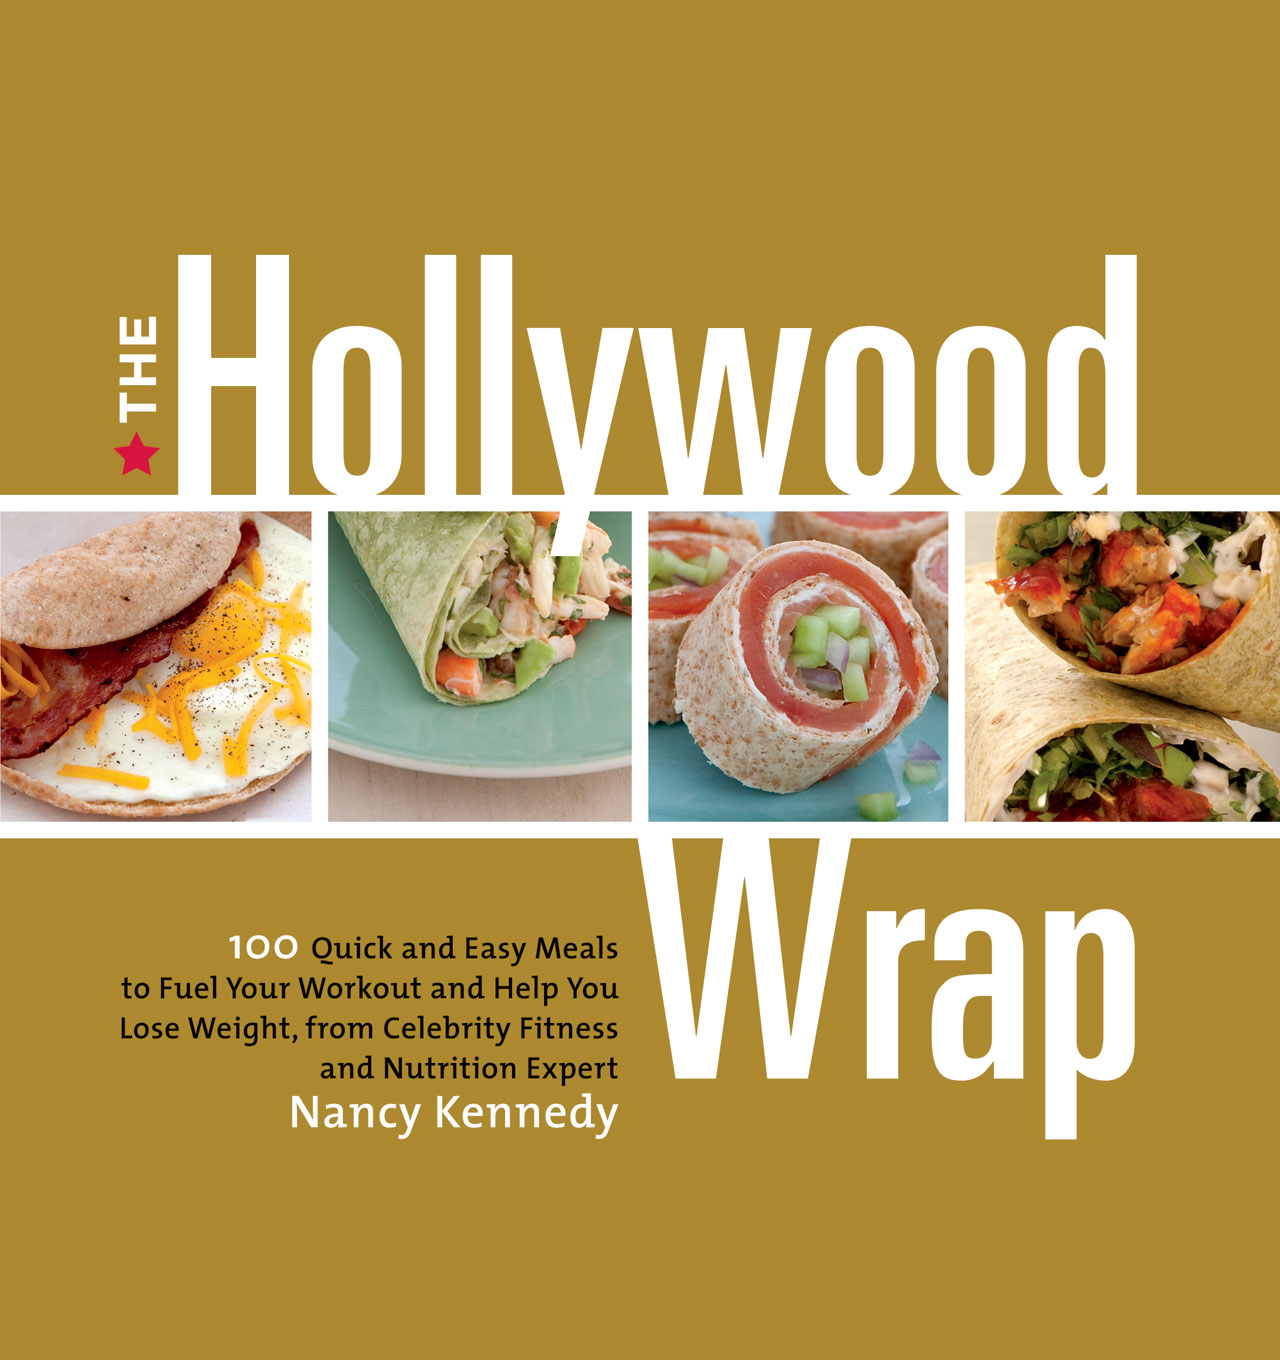 The Hollywood Wrap: 100 Quick and Easy Meals to Fuel Your Workout and Help You Lose Weight